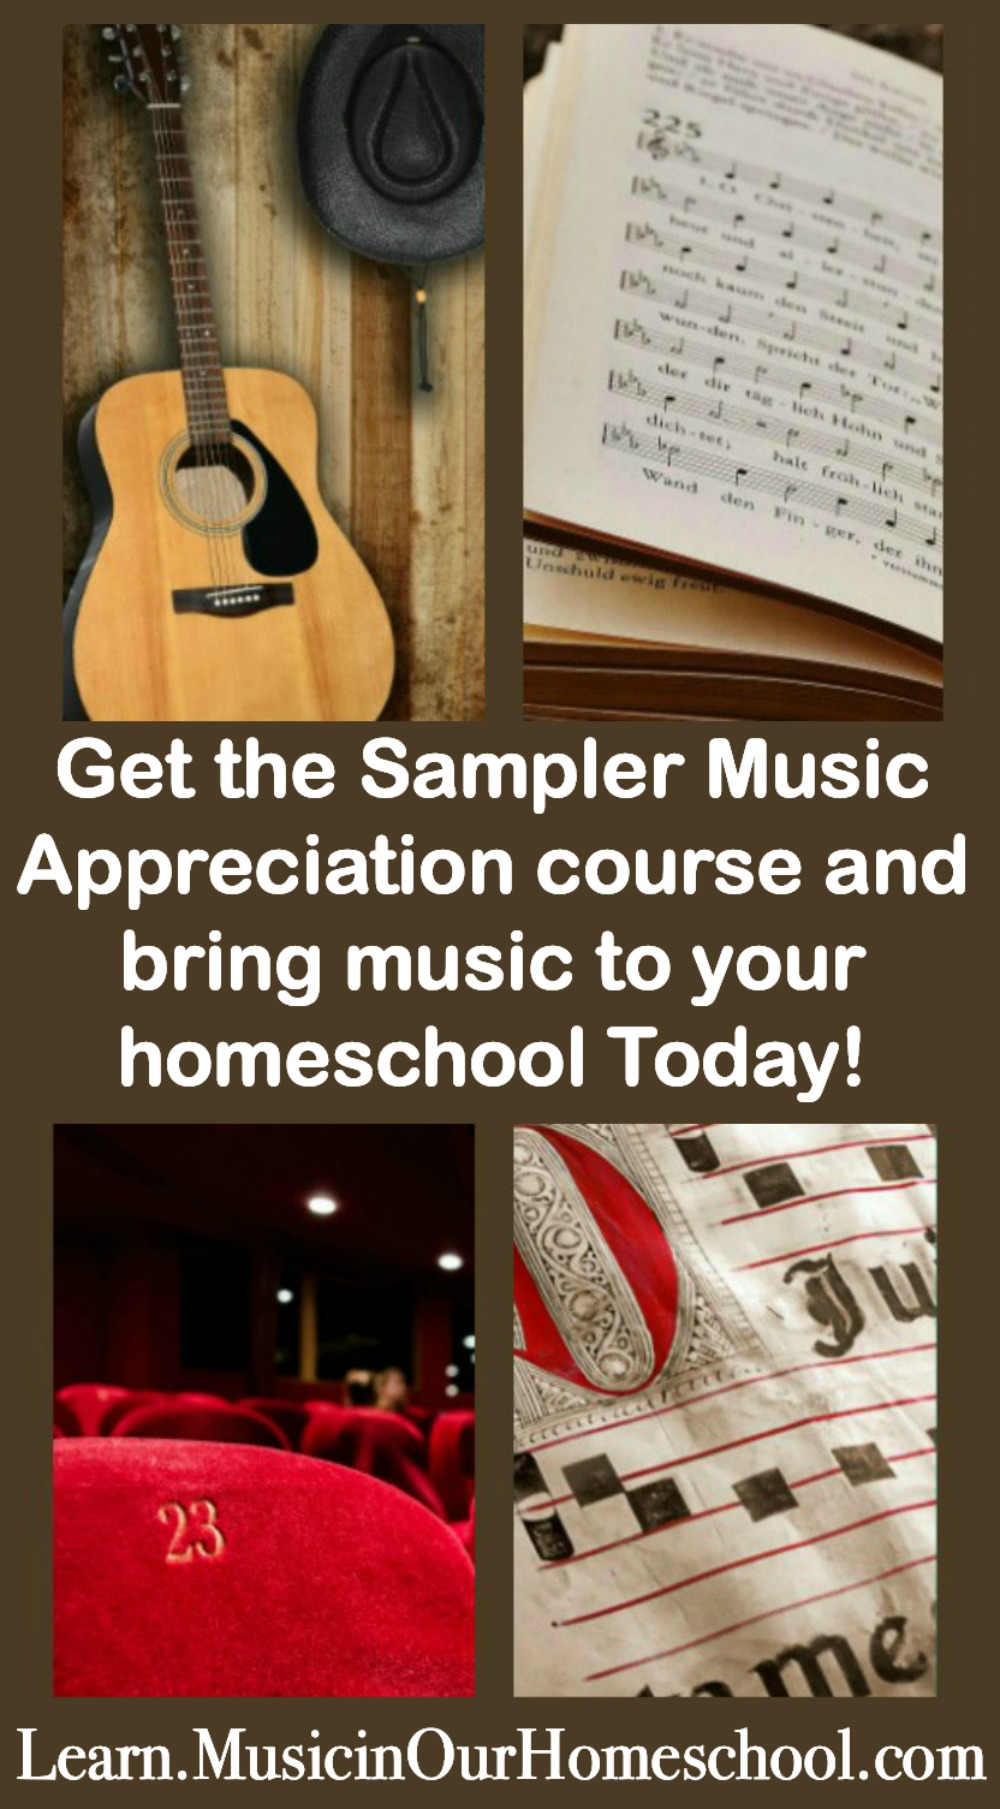 The Sampler Music Appreciation online course gives you a taste of many of the different course lessons available at Learn.MusicinOurHomeschool.com. #music #onlinemusic #homeschoolmusic #musicinourhomeschool